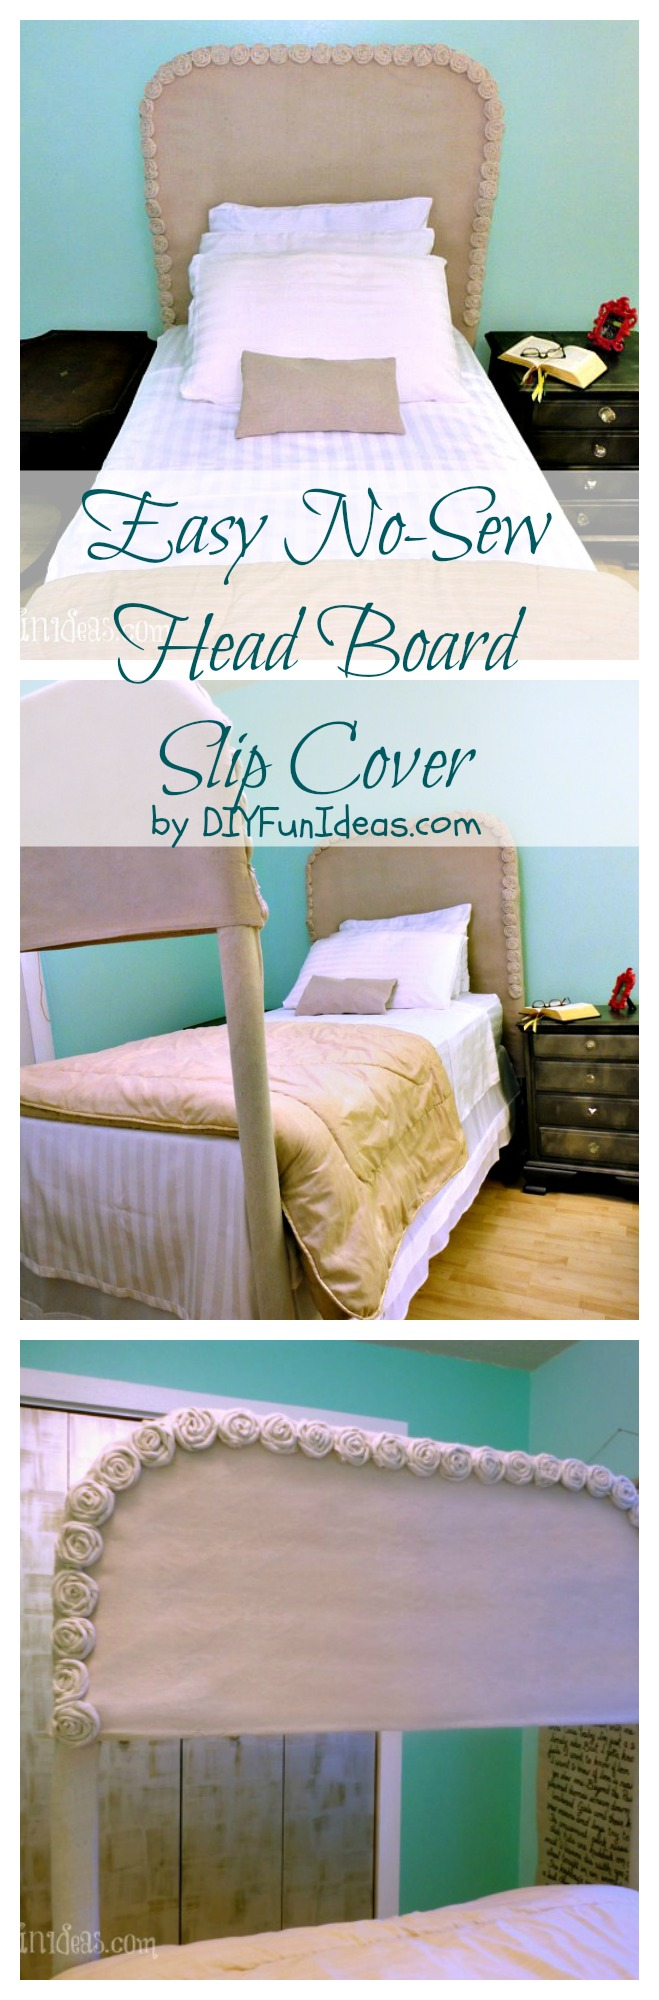 http://diyfunideas.com/wp-content/uploads/2014/07/Headboard-collage.jpg